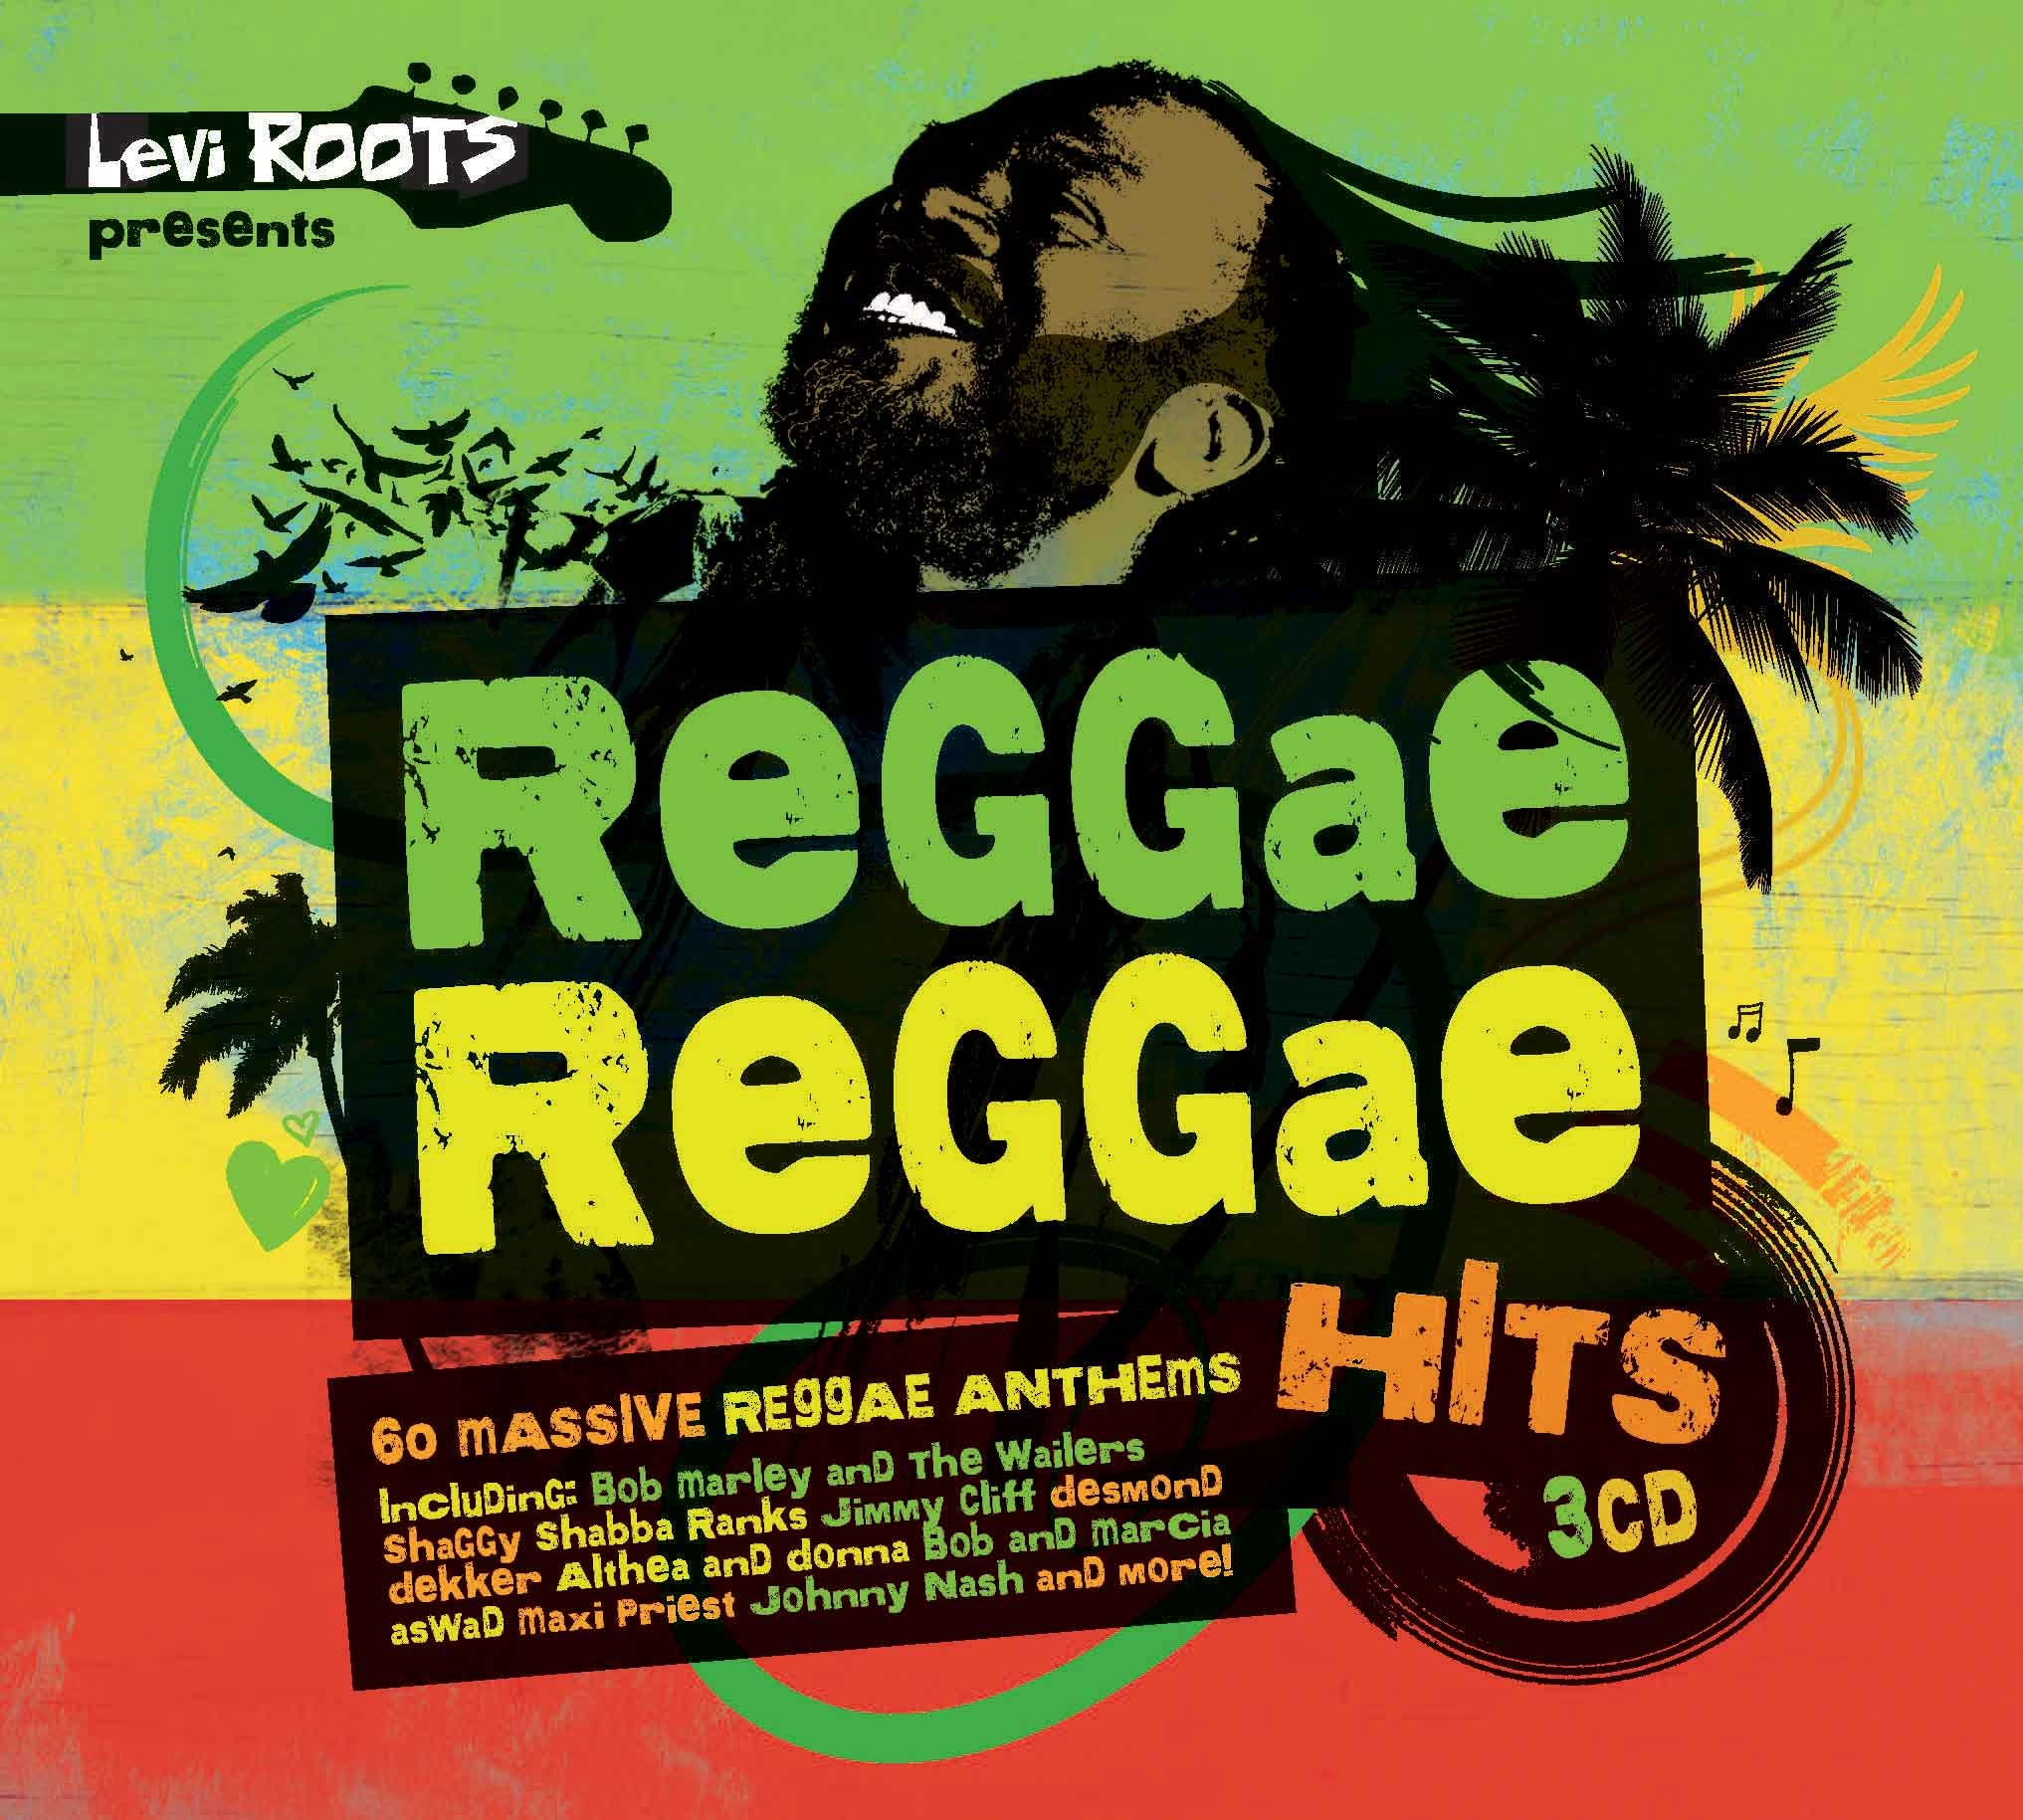 LEVI ROOTS CD sweepstakes